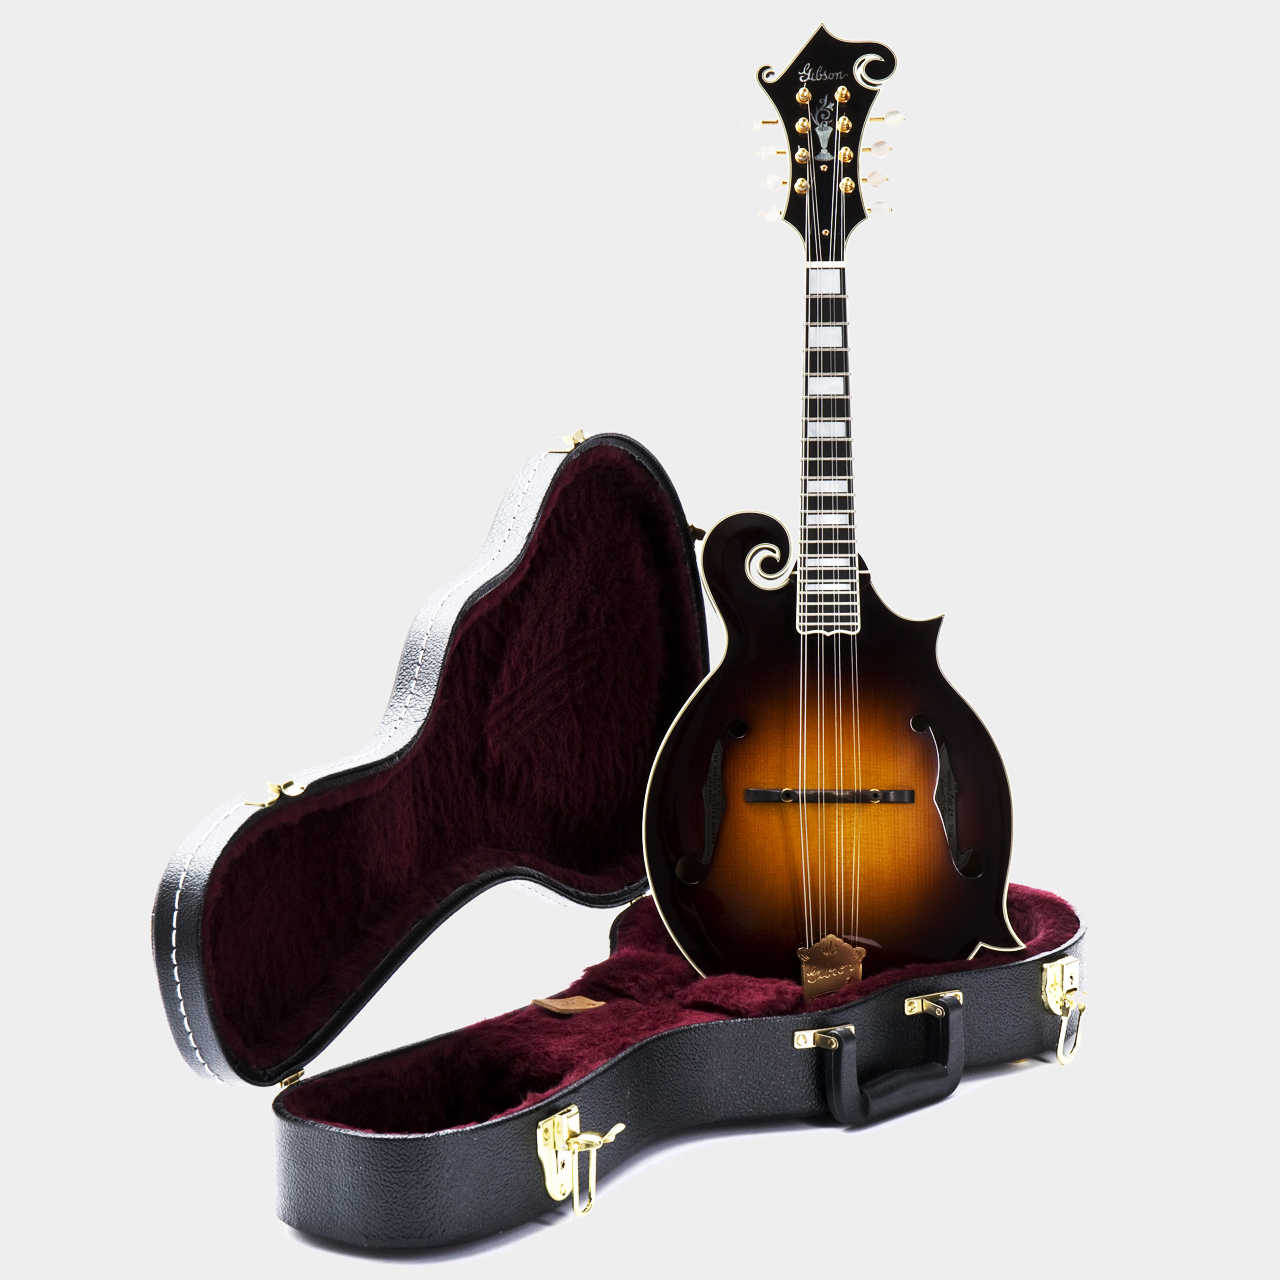 Gibson F-5 Sam Bush Mandoline Case